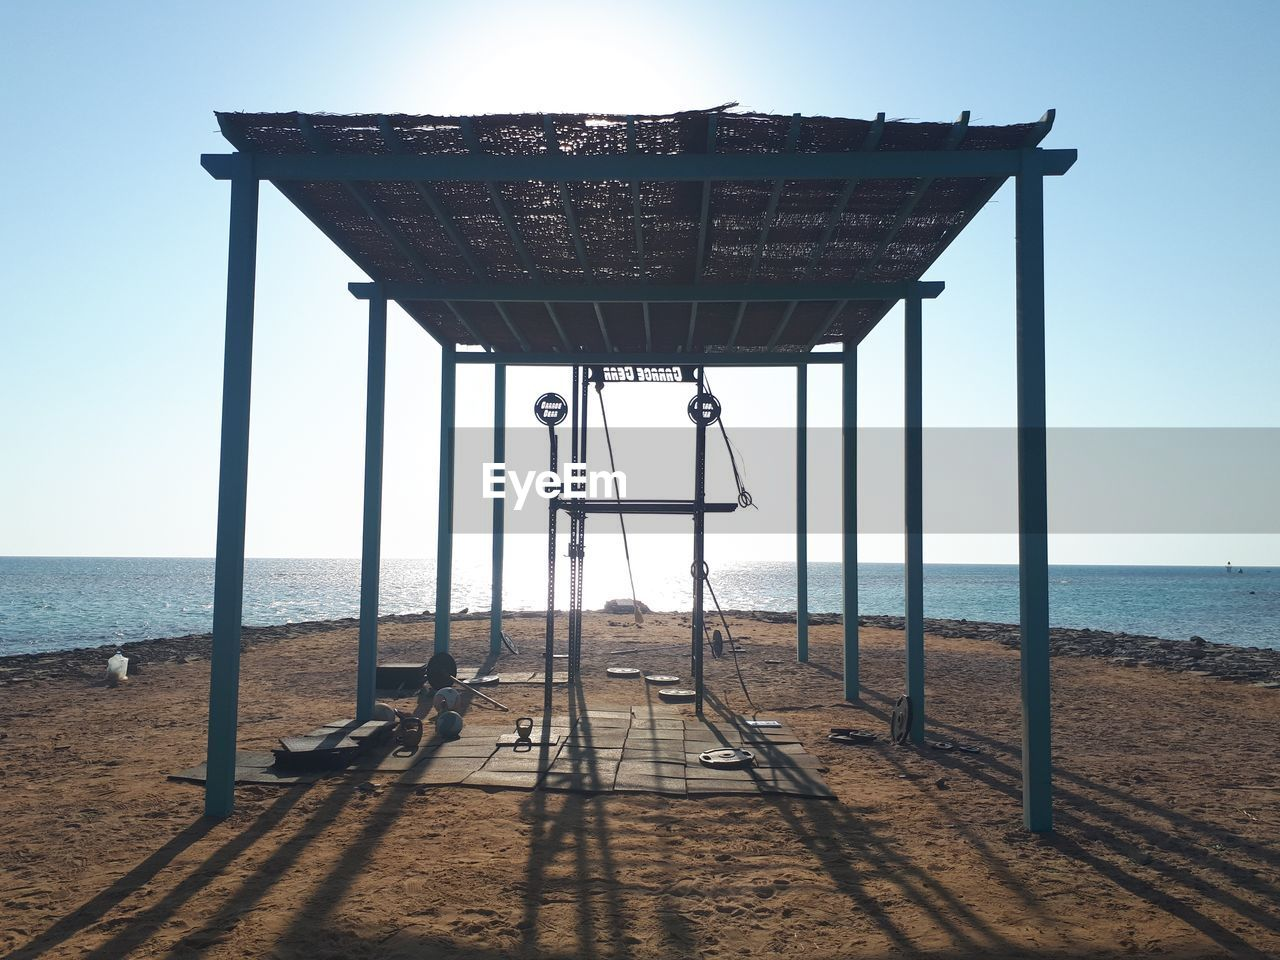 water, sea, sky, beach, horizon, land, horizon over water, nature, scenics - nature, architecture, tranquility, shadow, no people, day, clear sky, tranquil scene, sunlight, sand, built structure, outdoors